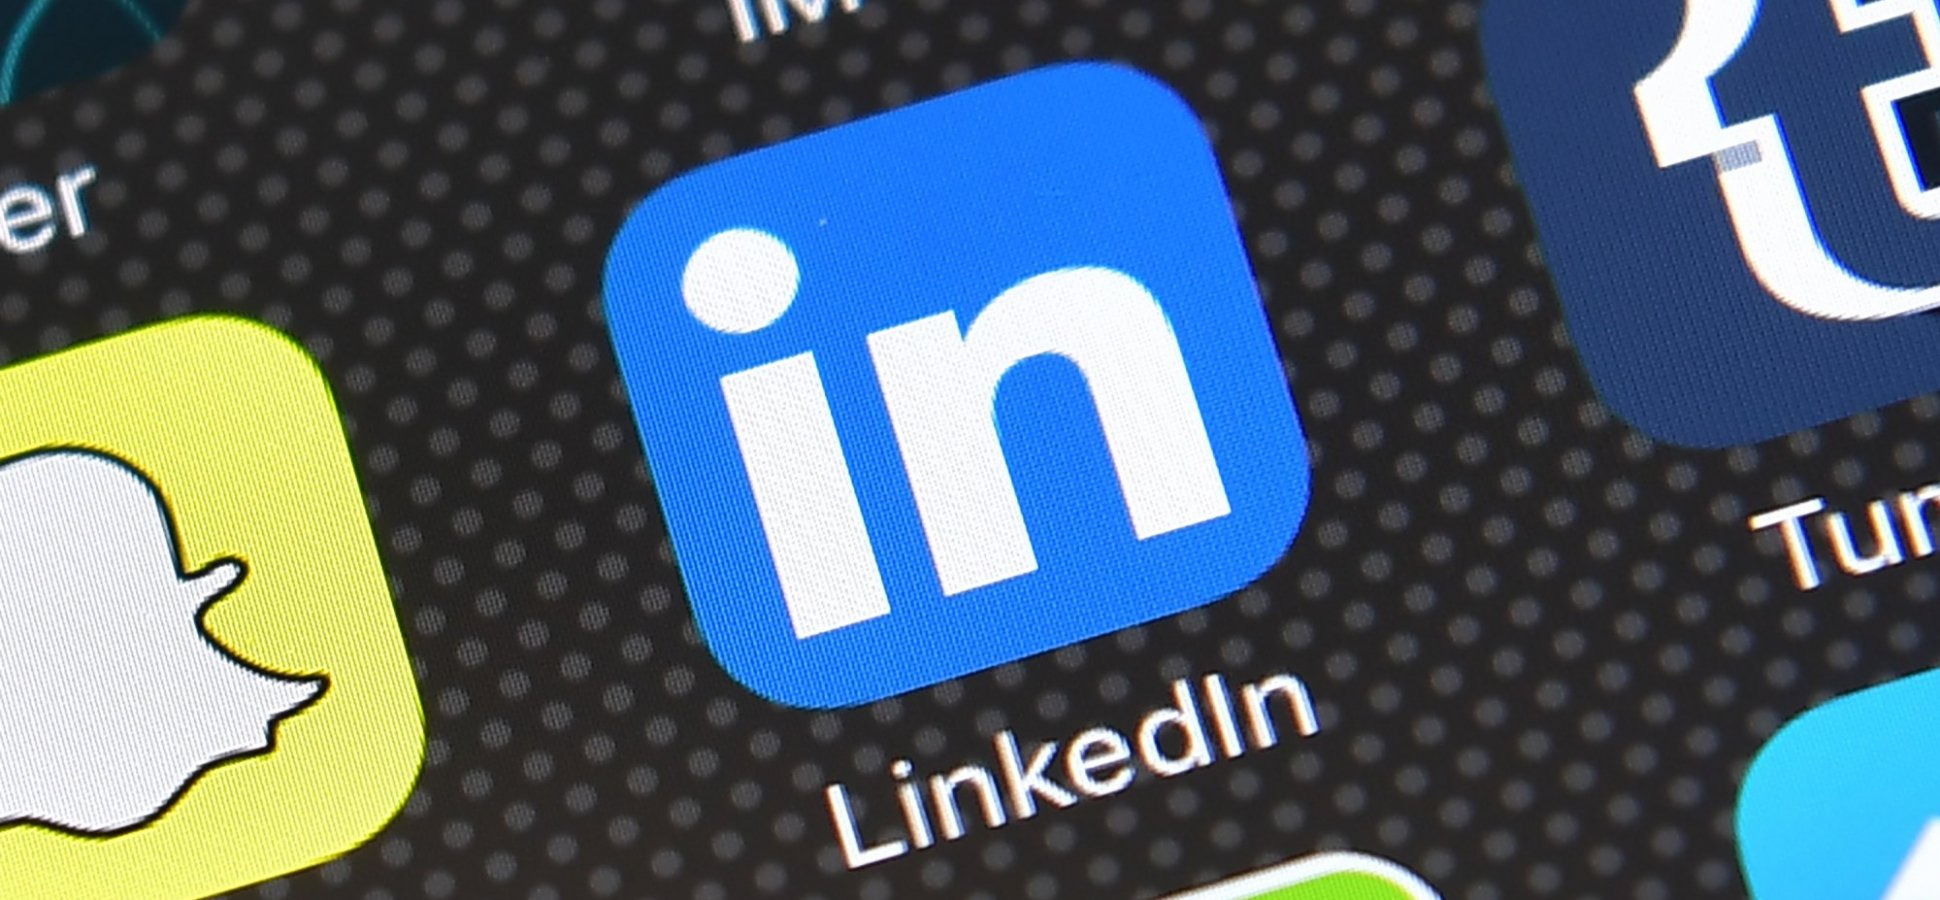 4 Ways to Make Your LinkedIn Profile More Visually Appealing